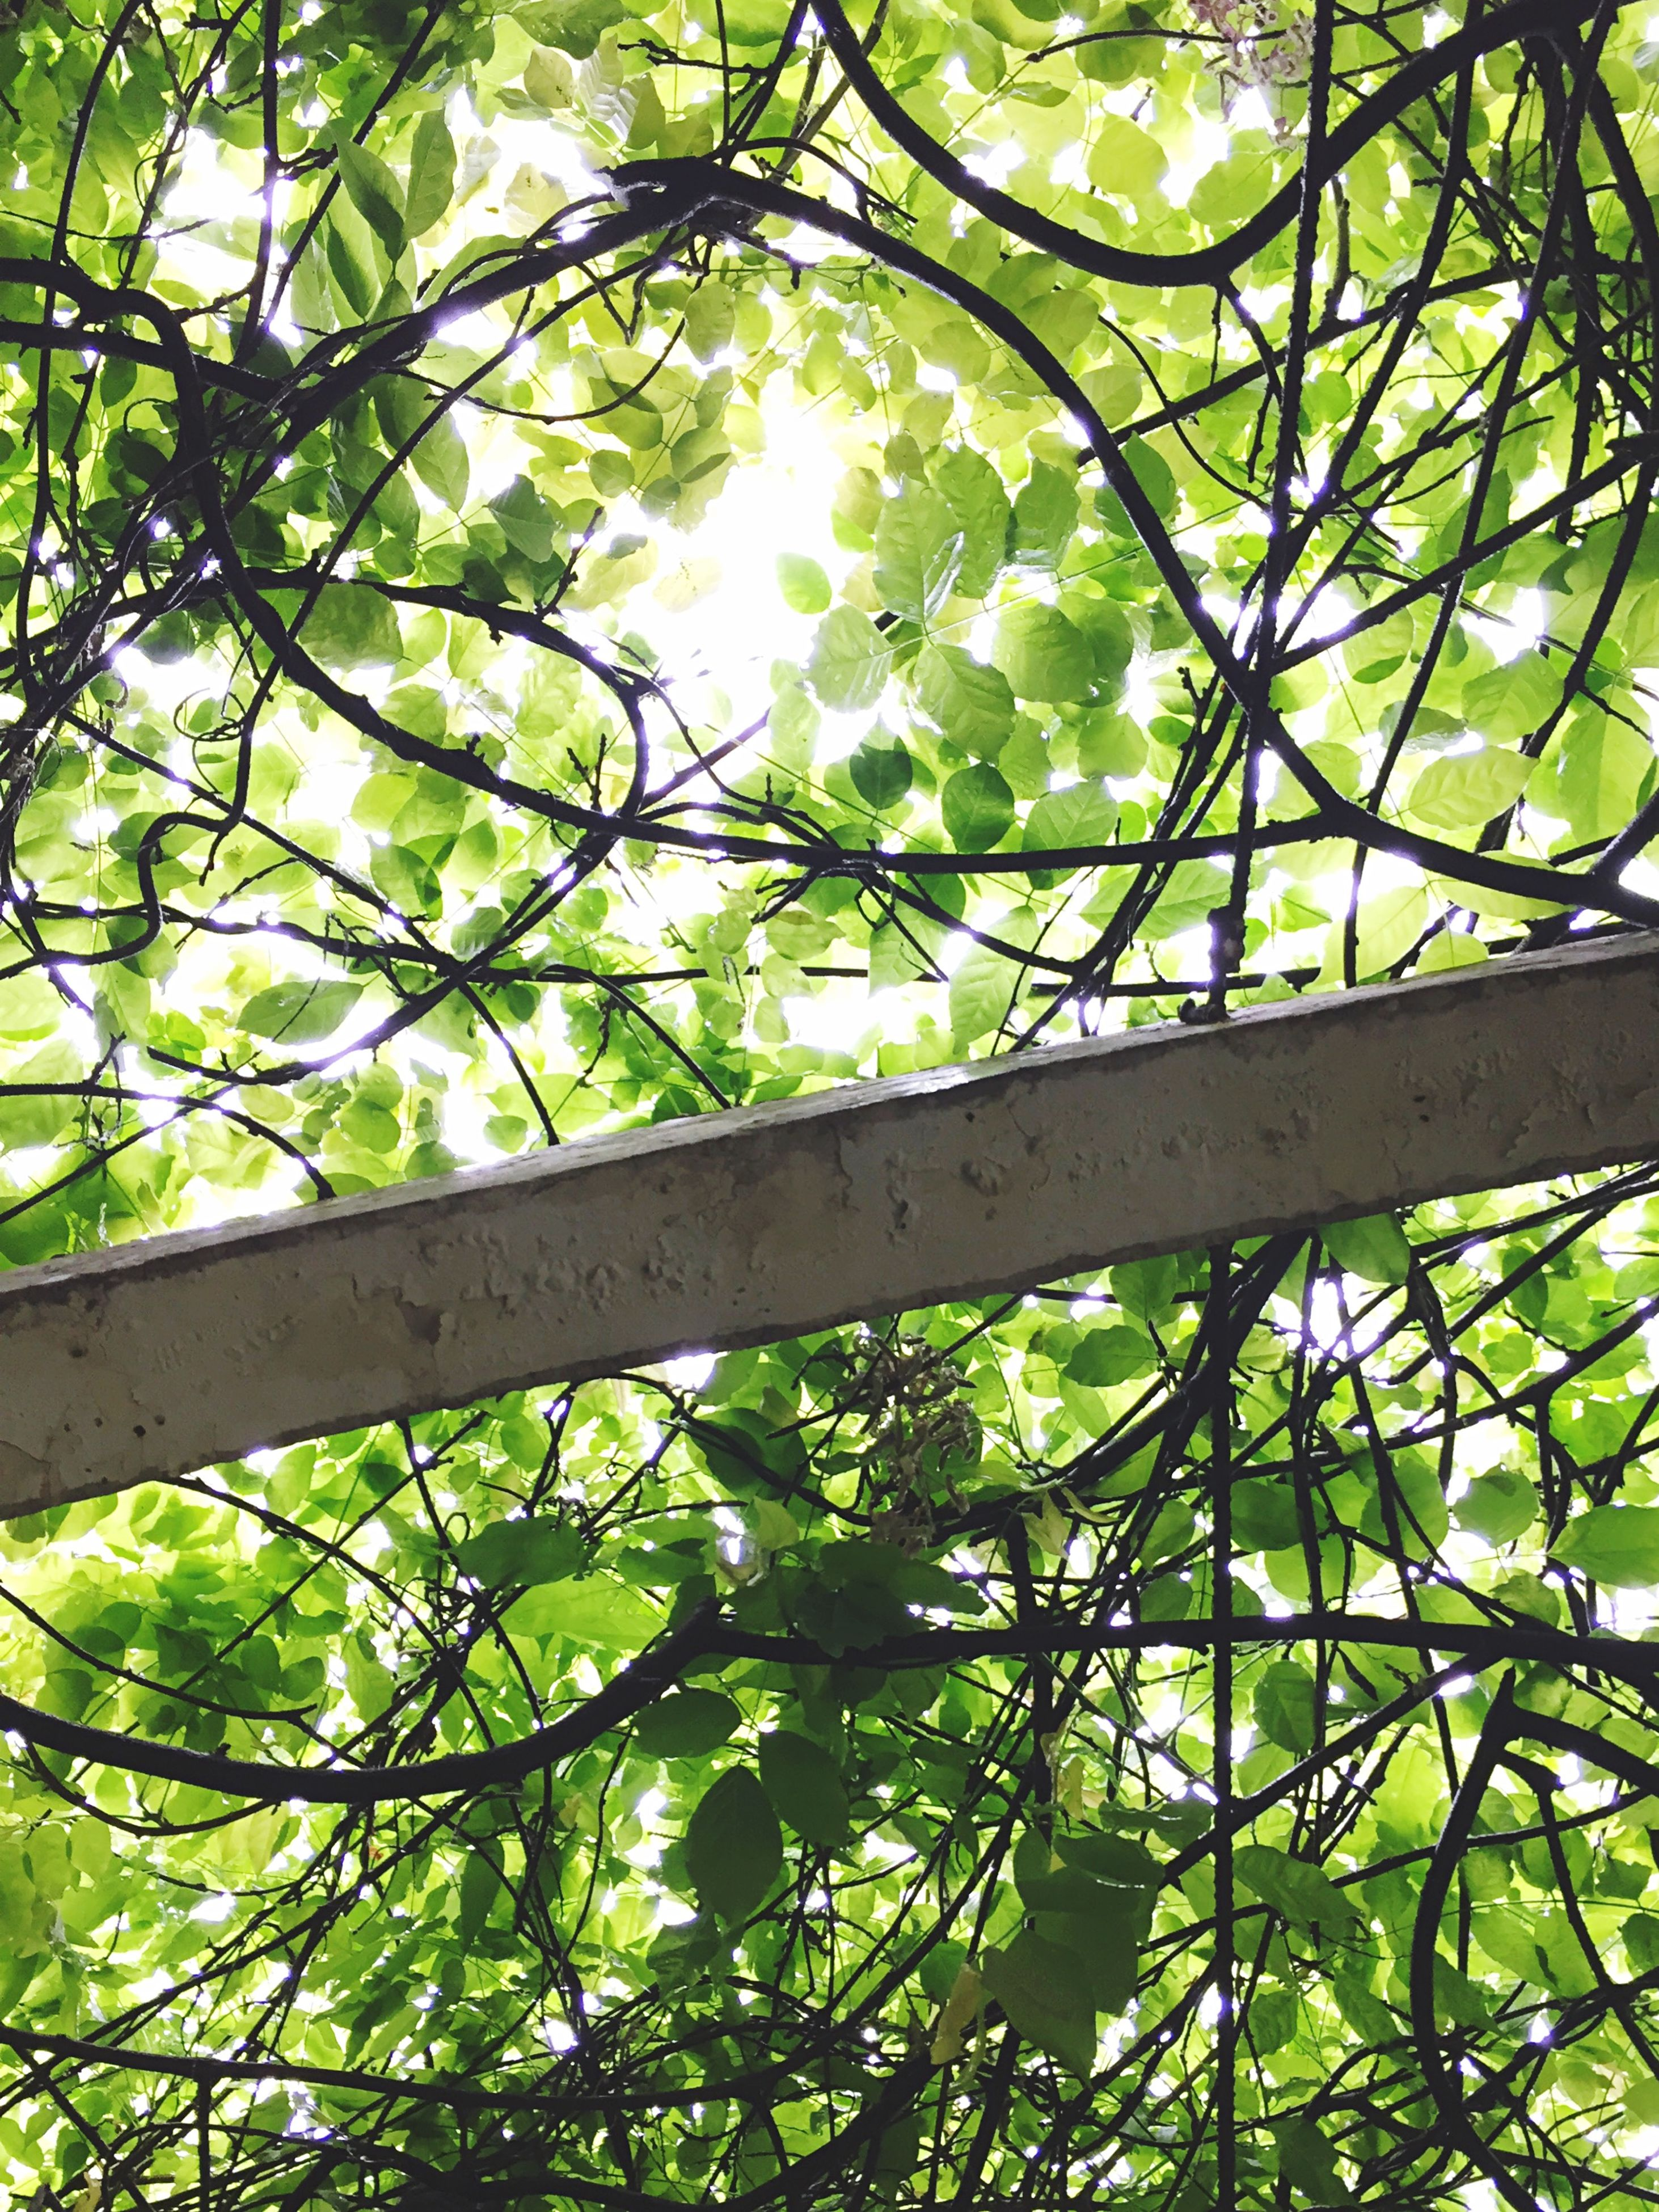 tree, low angle view, branch, growth, green color, leaf, nature, day, beauty in nature, lush foliage, tranquility, outdoors, no people, sky, green, tree trunk, sunlight, directly below, clear sky, backgrounds